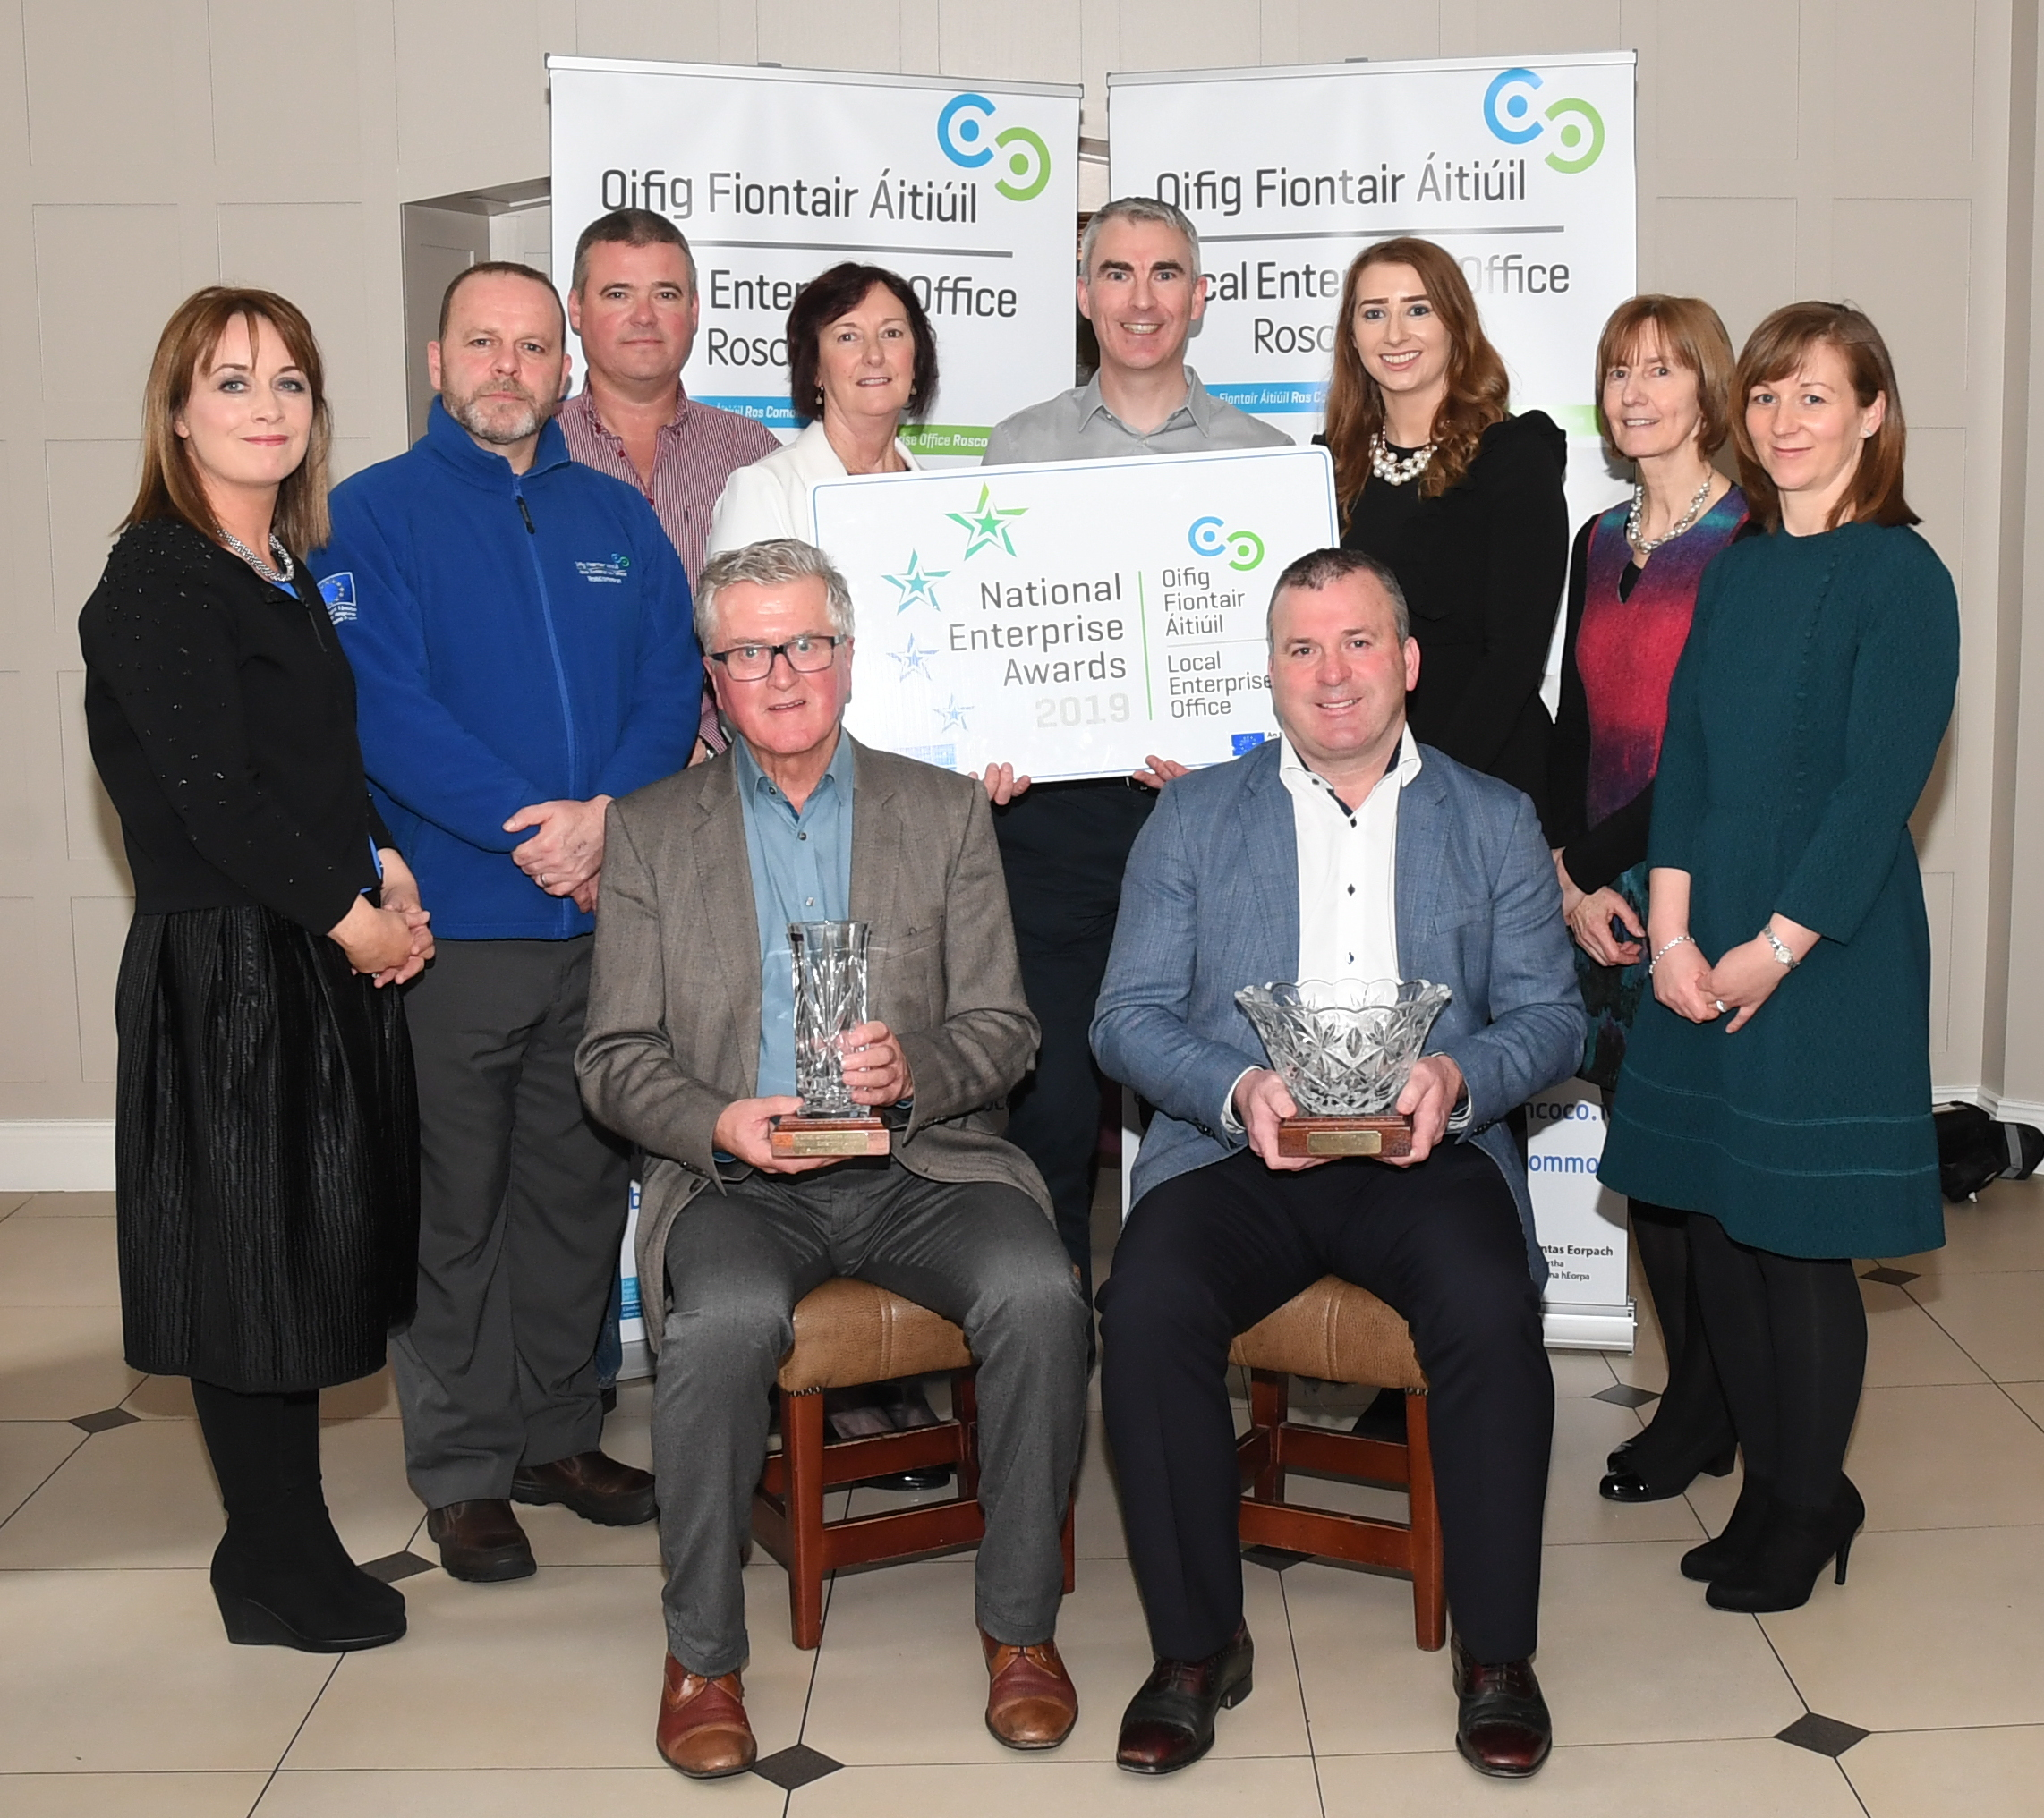 County Enterprise Award Winner